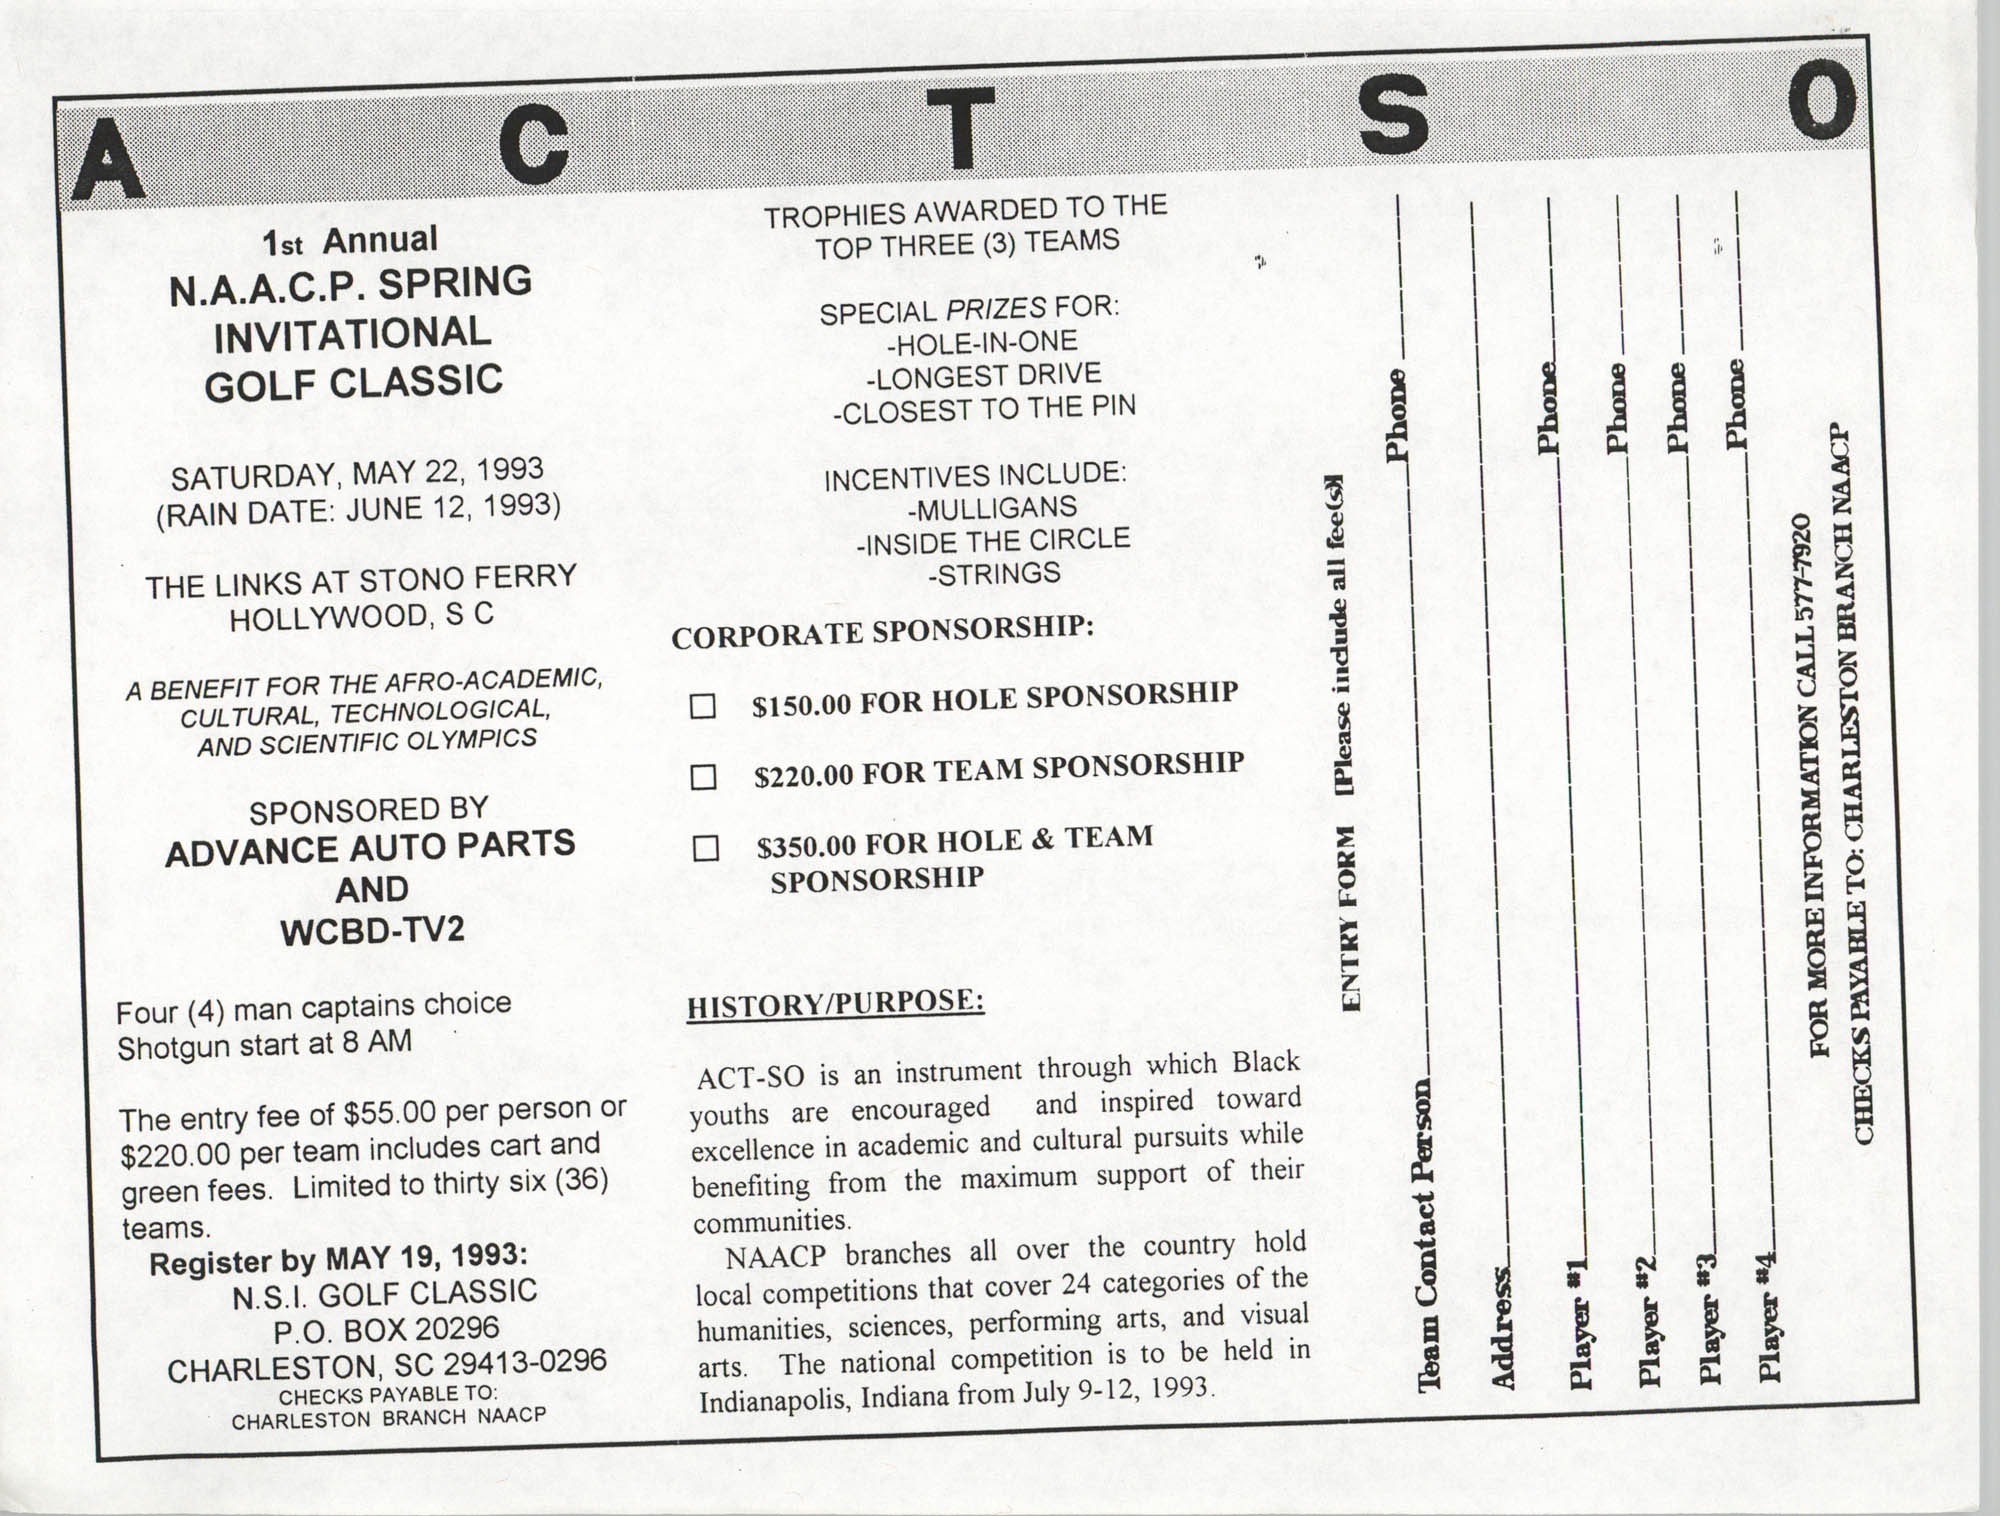 1st Annual NAACP Spring Invitational Golf Classic Awards Ceremony and Reception, NAACP, 1993, Page 4